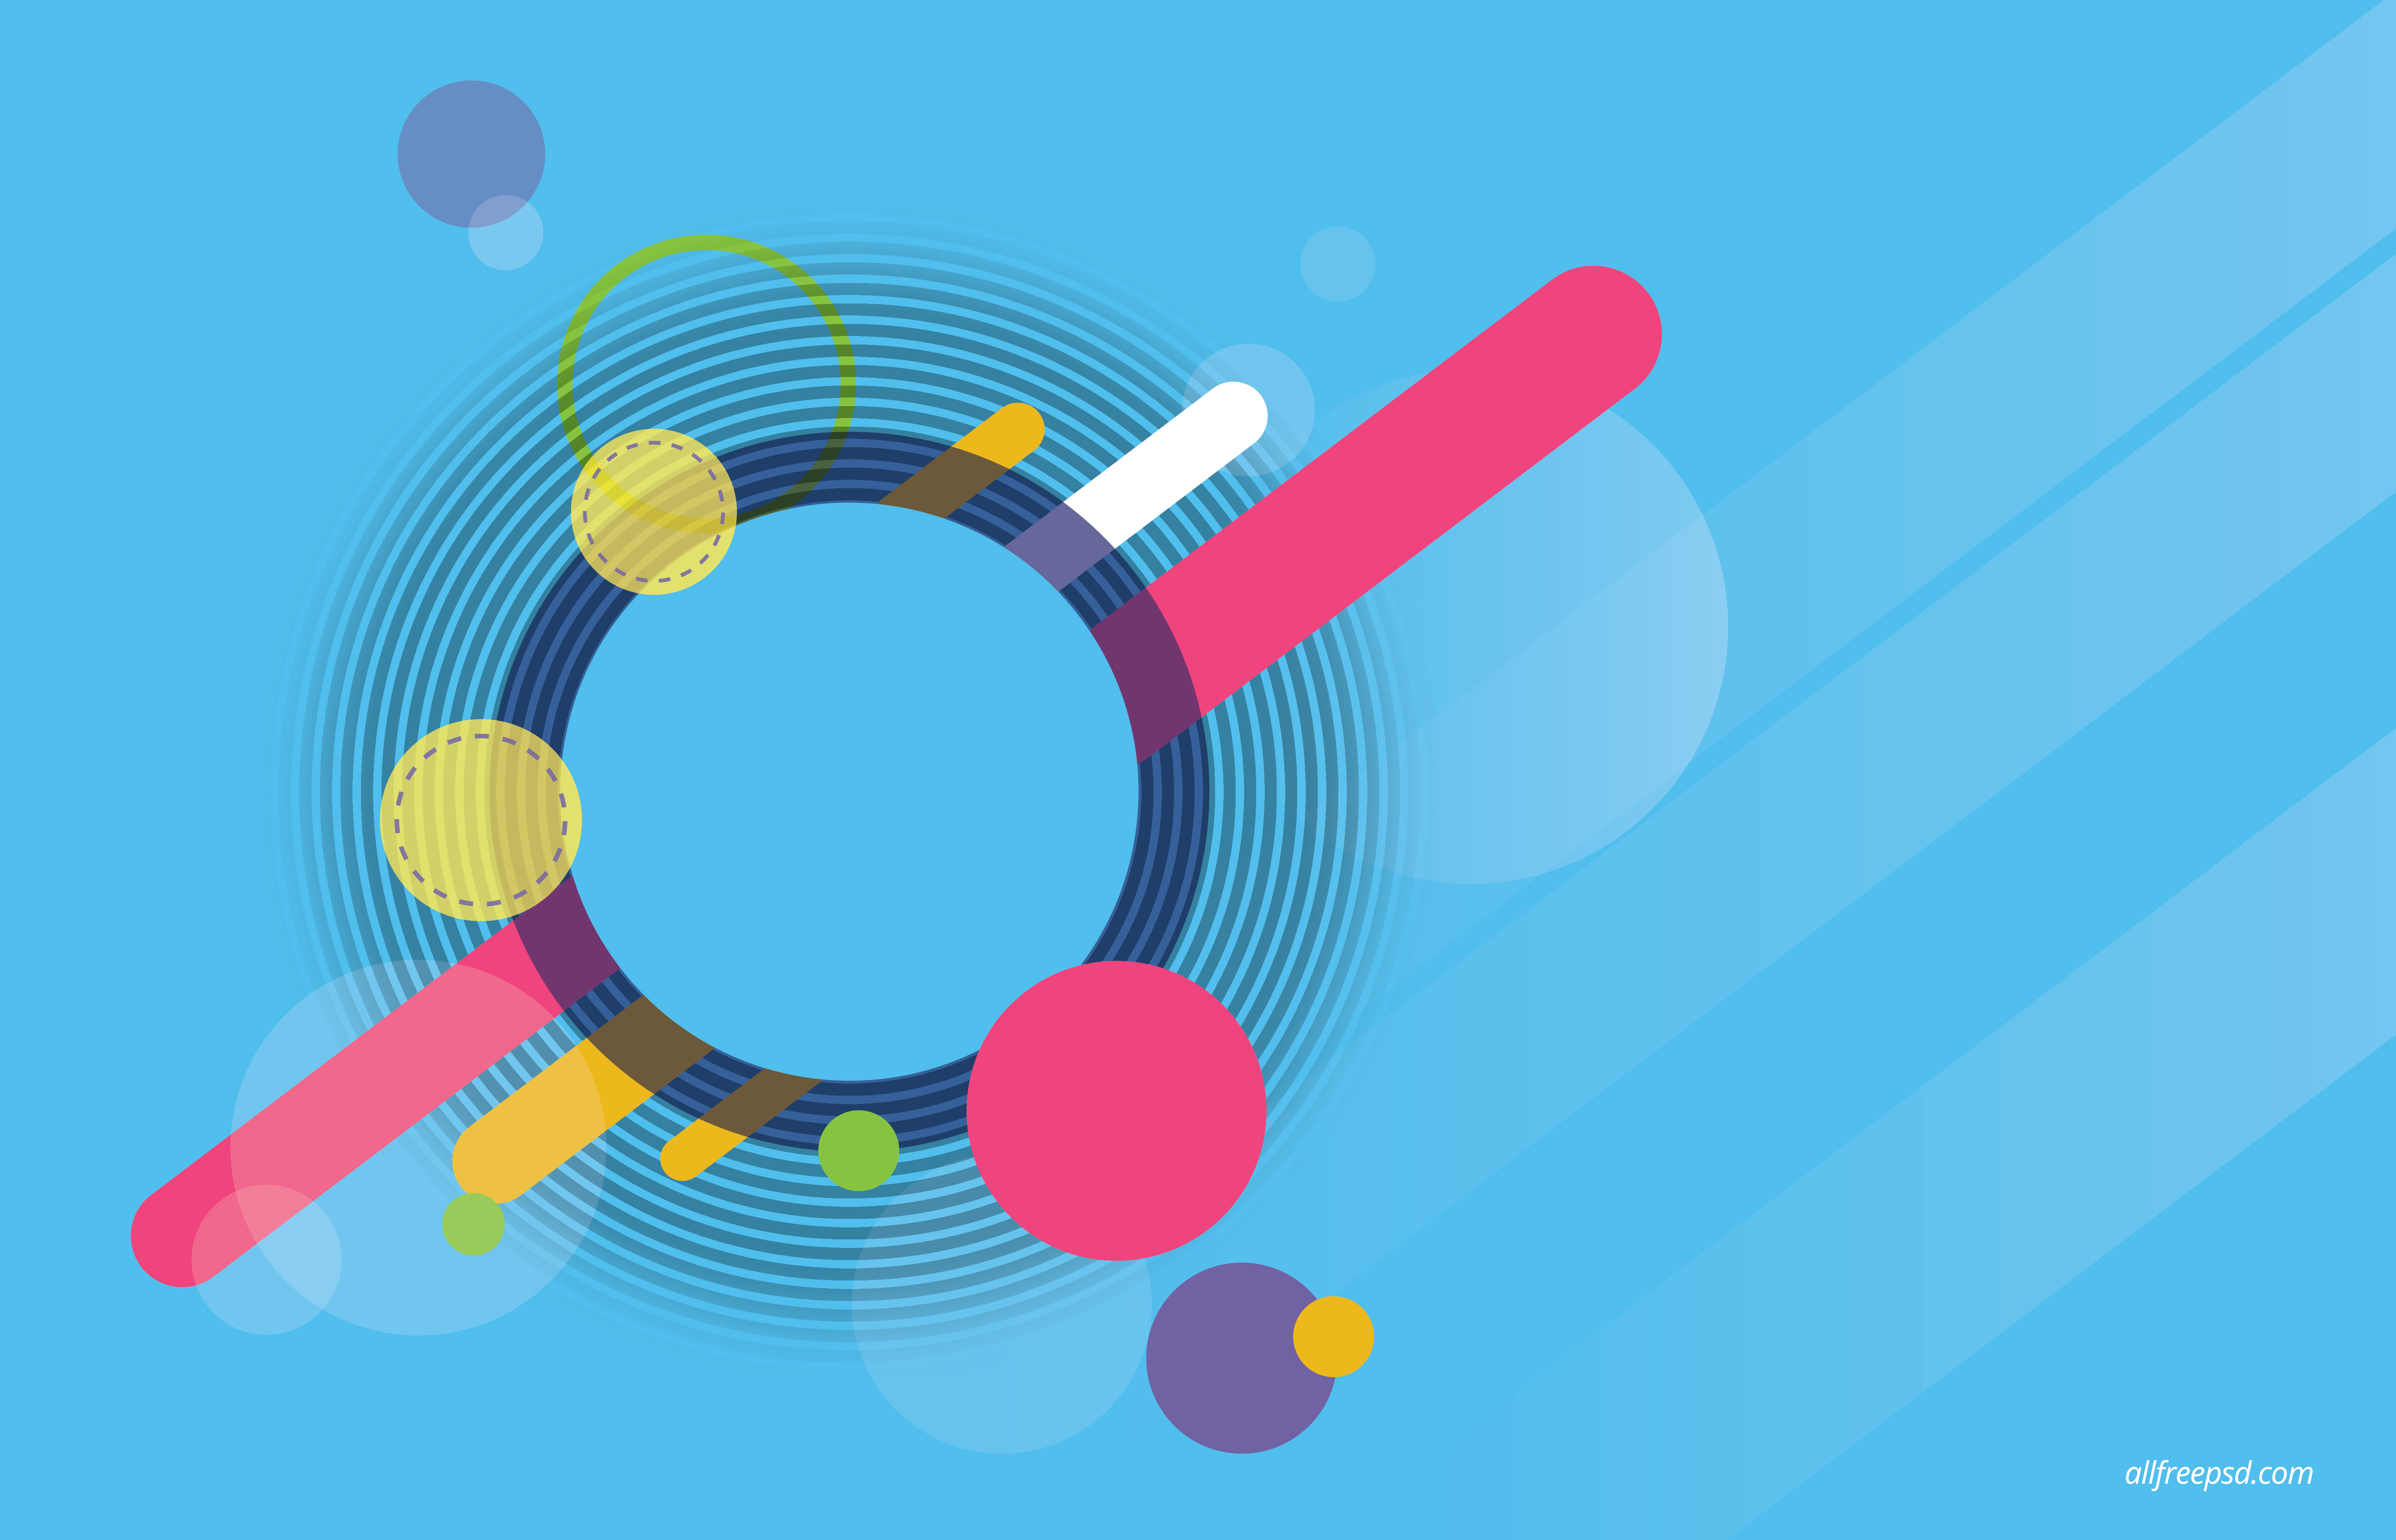 Abstract Blue Circle Background - Free psd and graphic designs